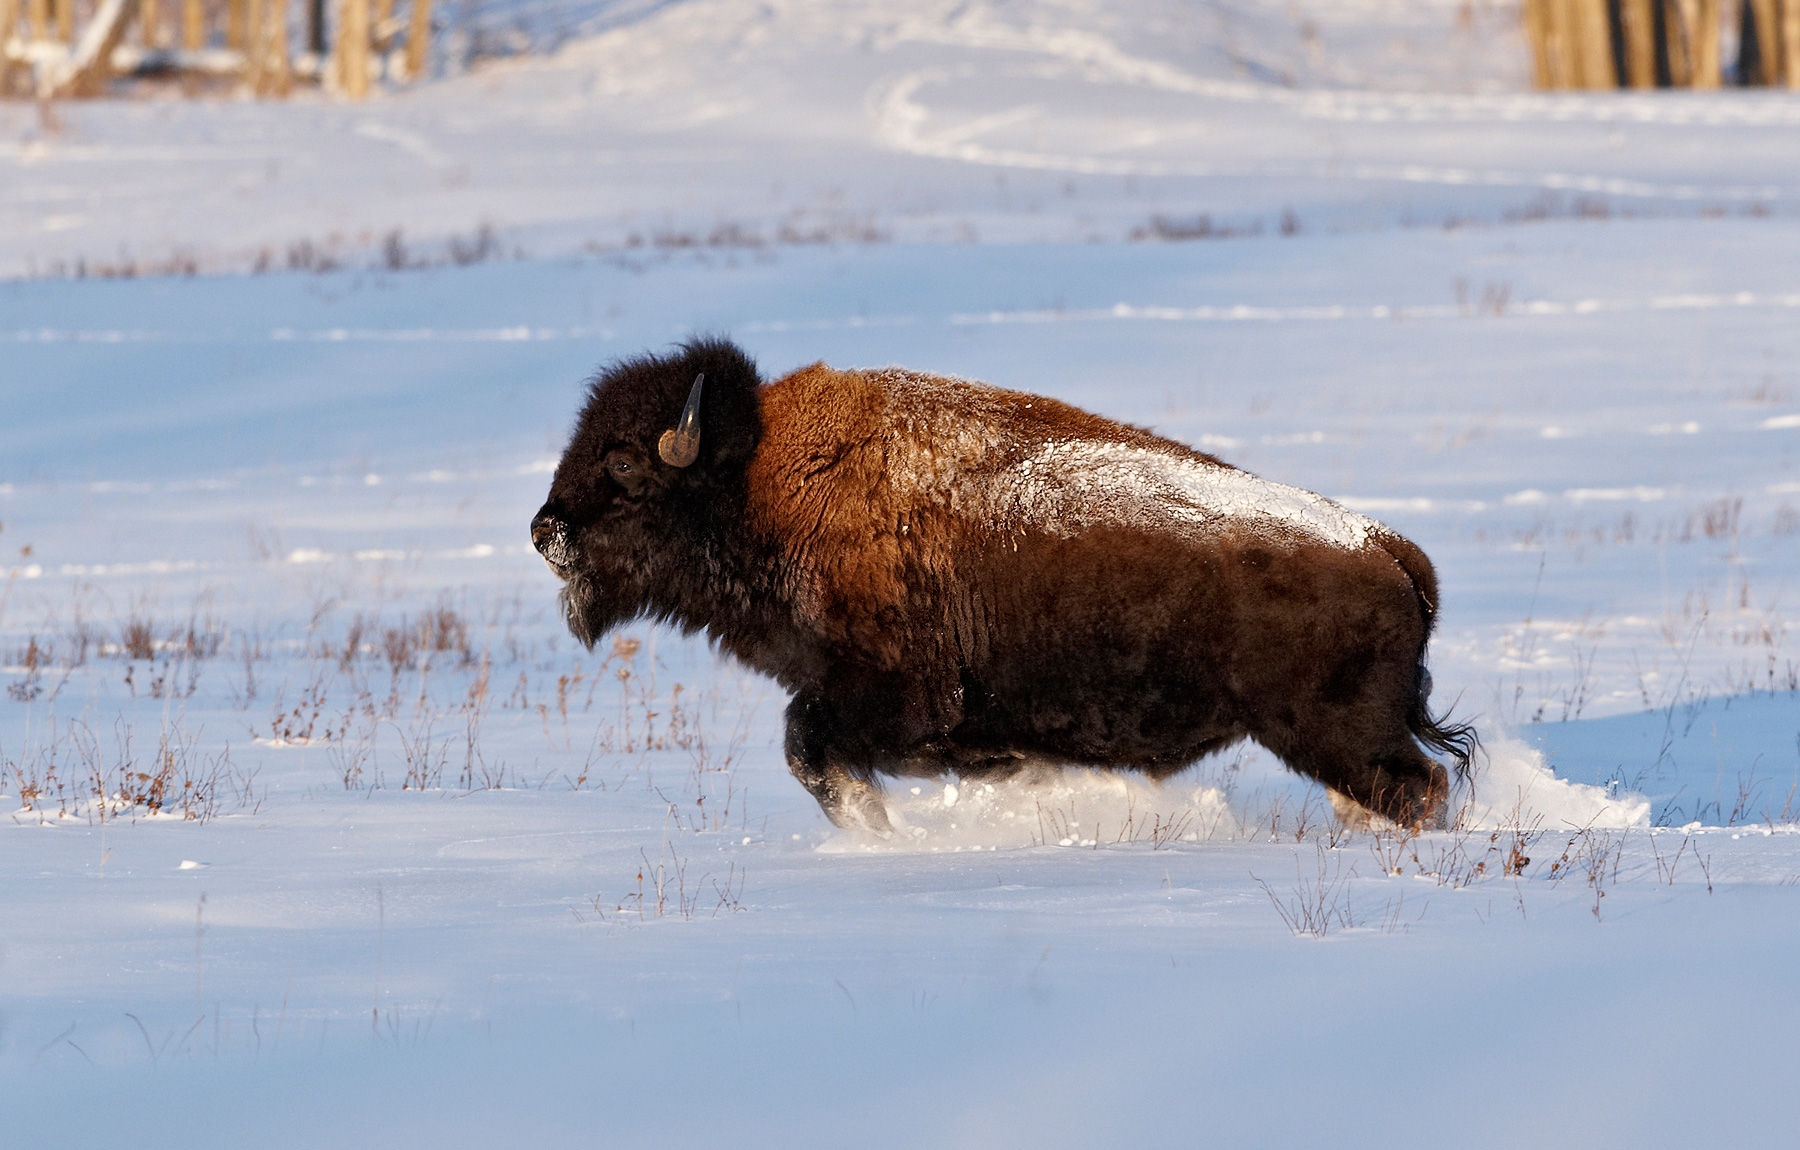 American Bison (Bison bison) running in snow, Alberta, Canada, January